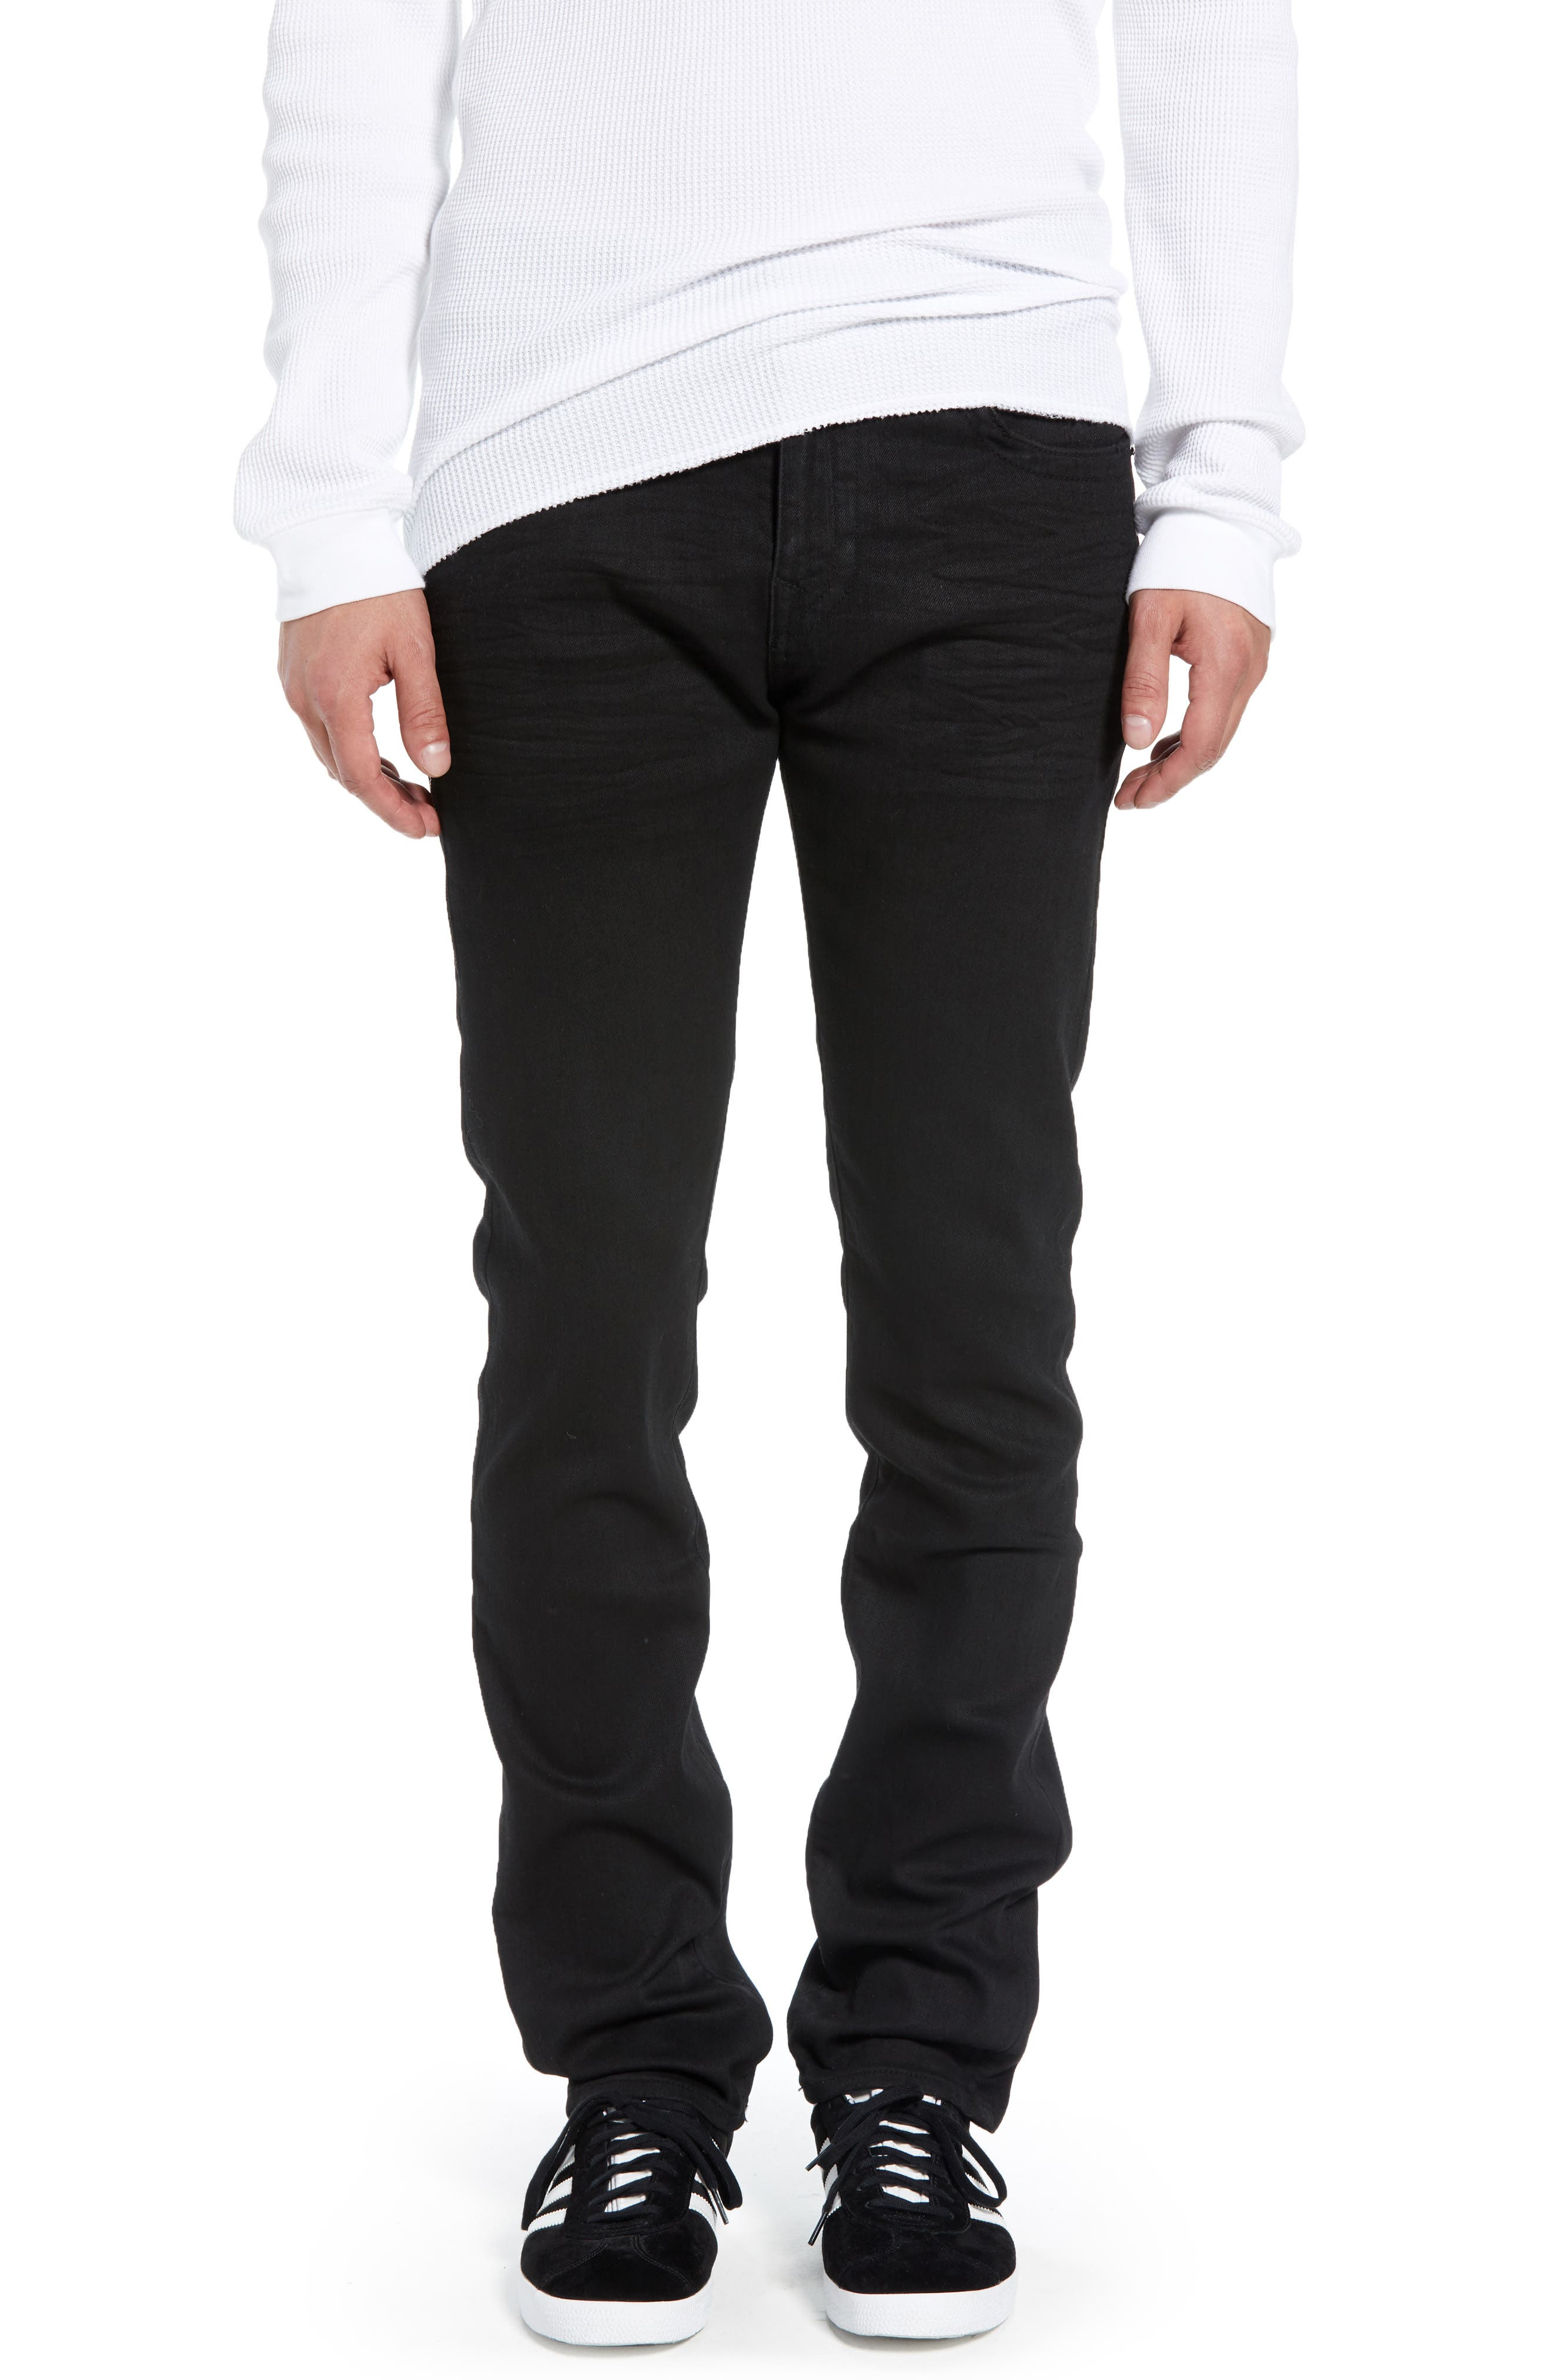 Rocco Skinny Fit Jeans,                         Main,                         color, MIDNIGHT BLACK COATED